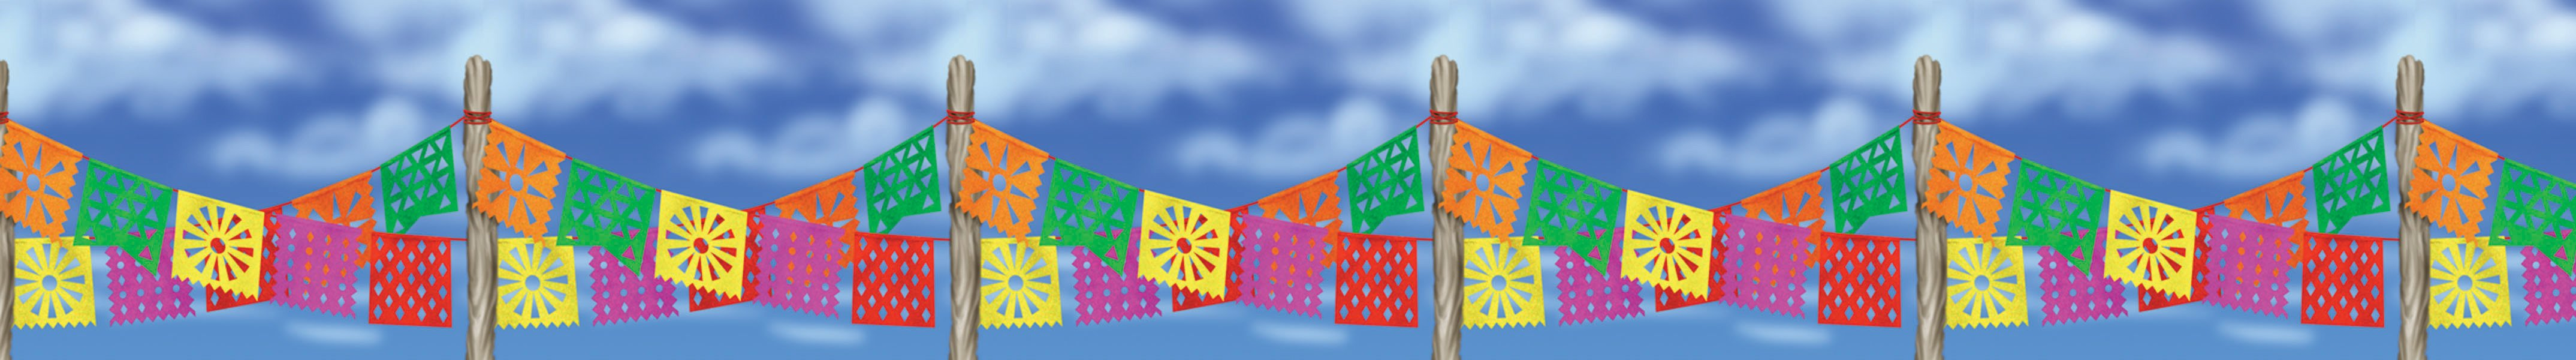 50' Fiesta Pennant Garland Border Roll